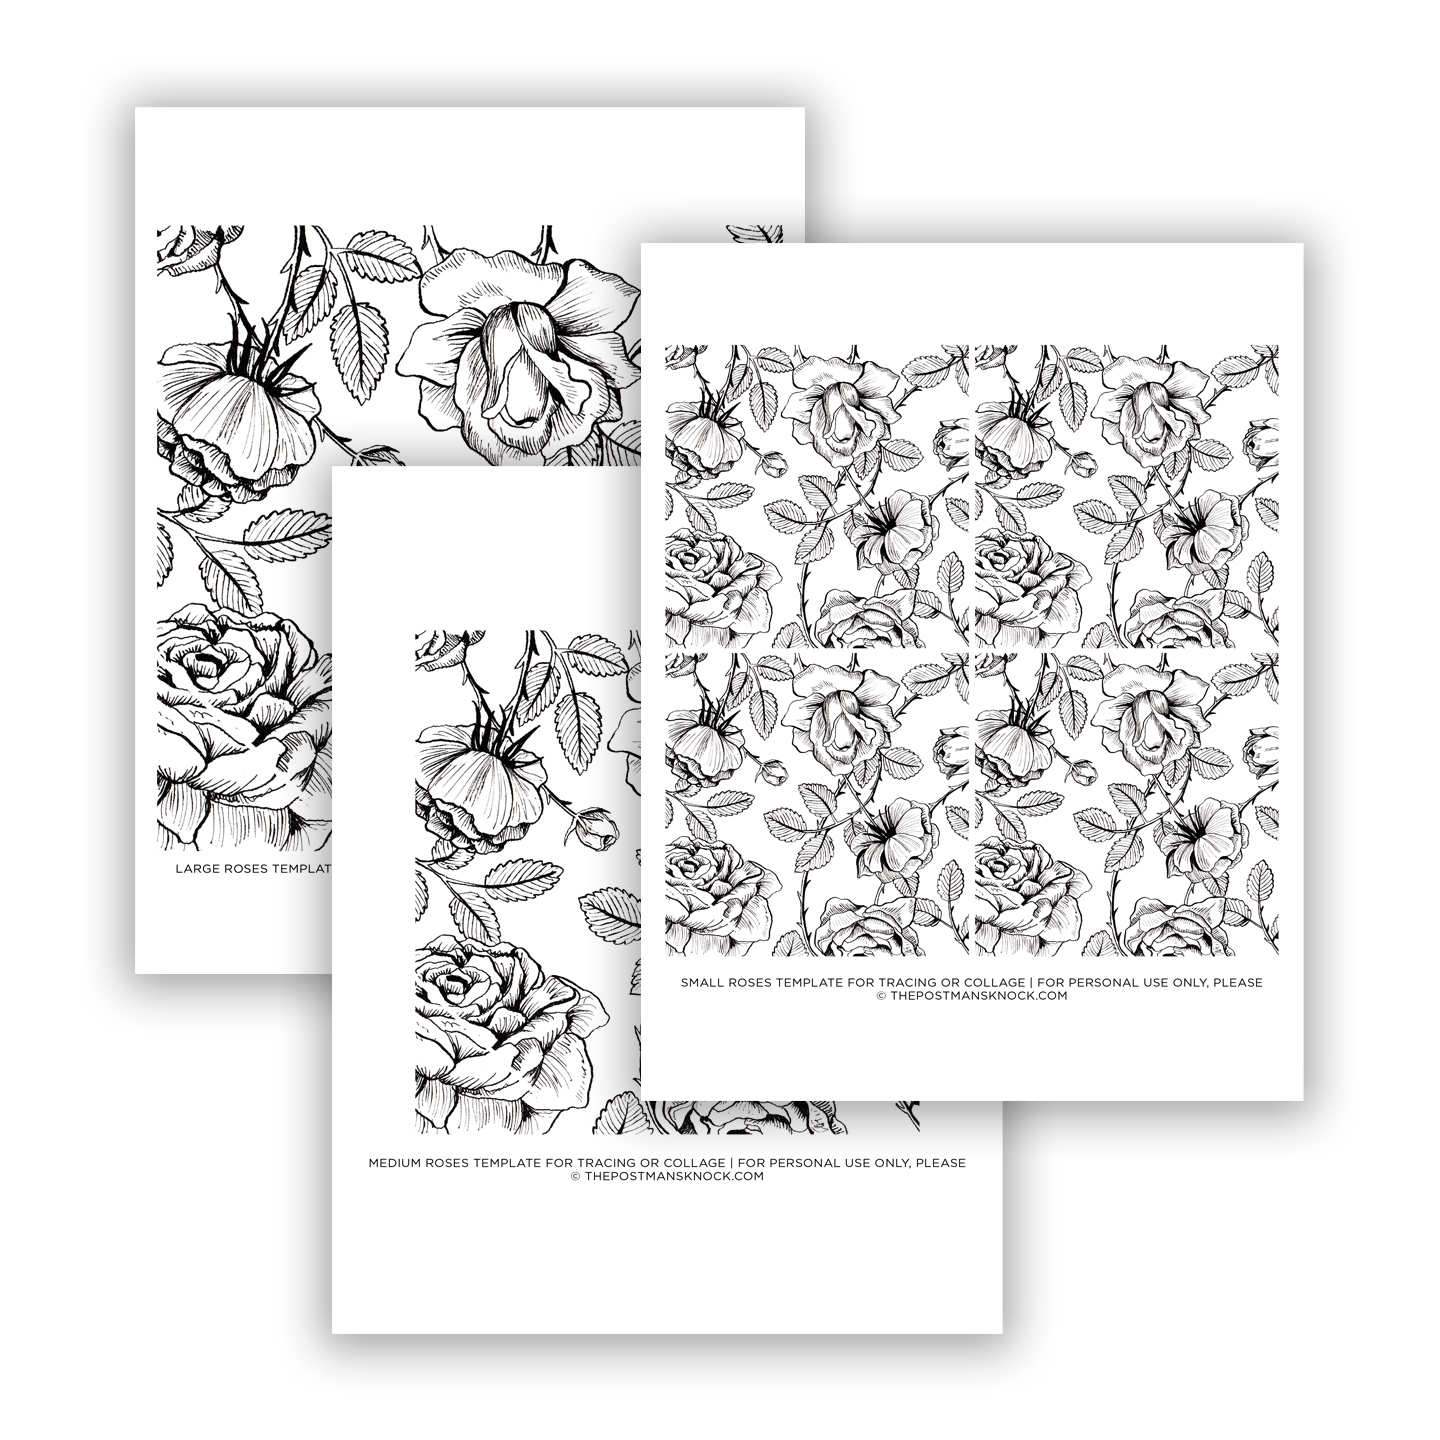 Illustrated Roses Templates for Tracing/Collage | The Postman\'s Knock